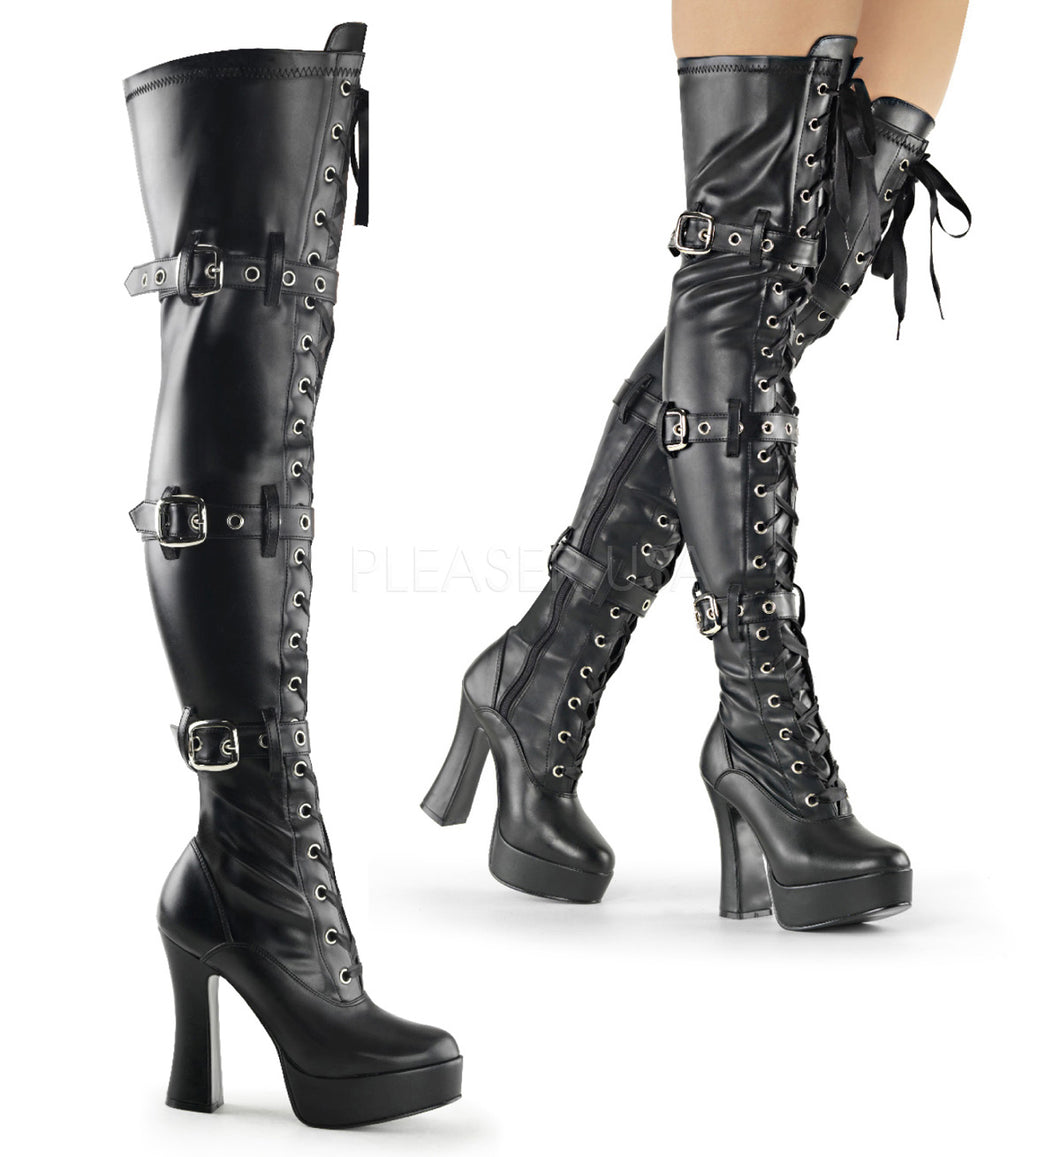 Electra 3028 - Gothic high heel thigh high boots